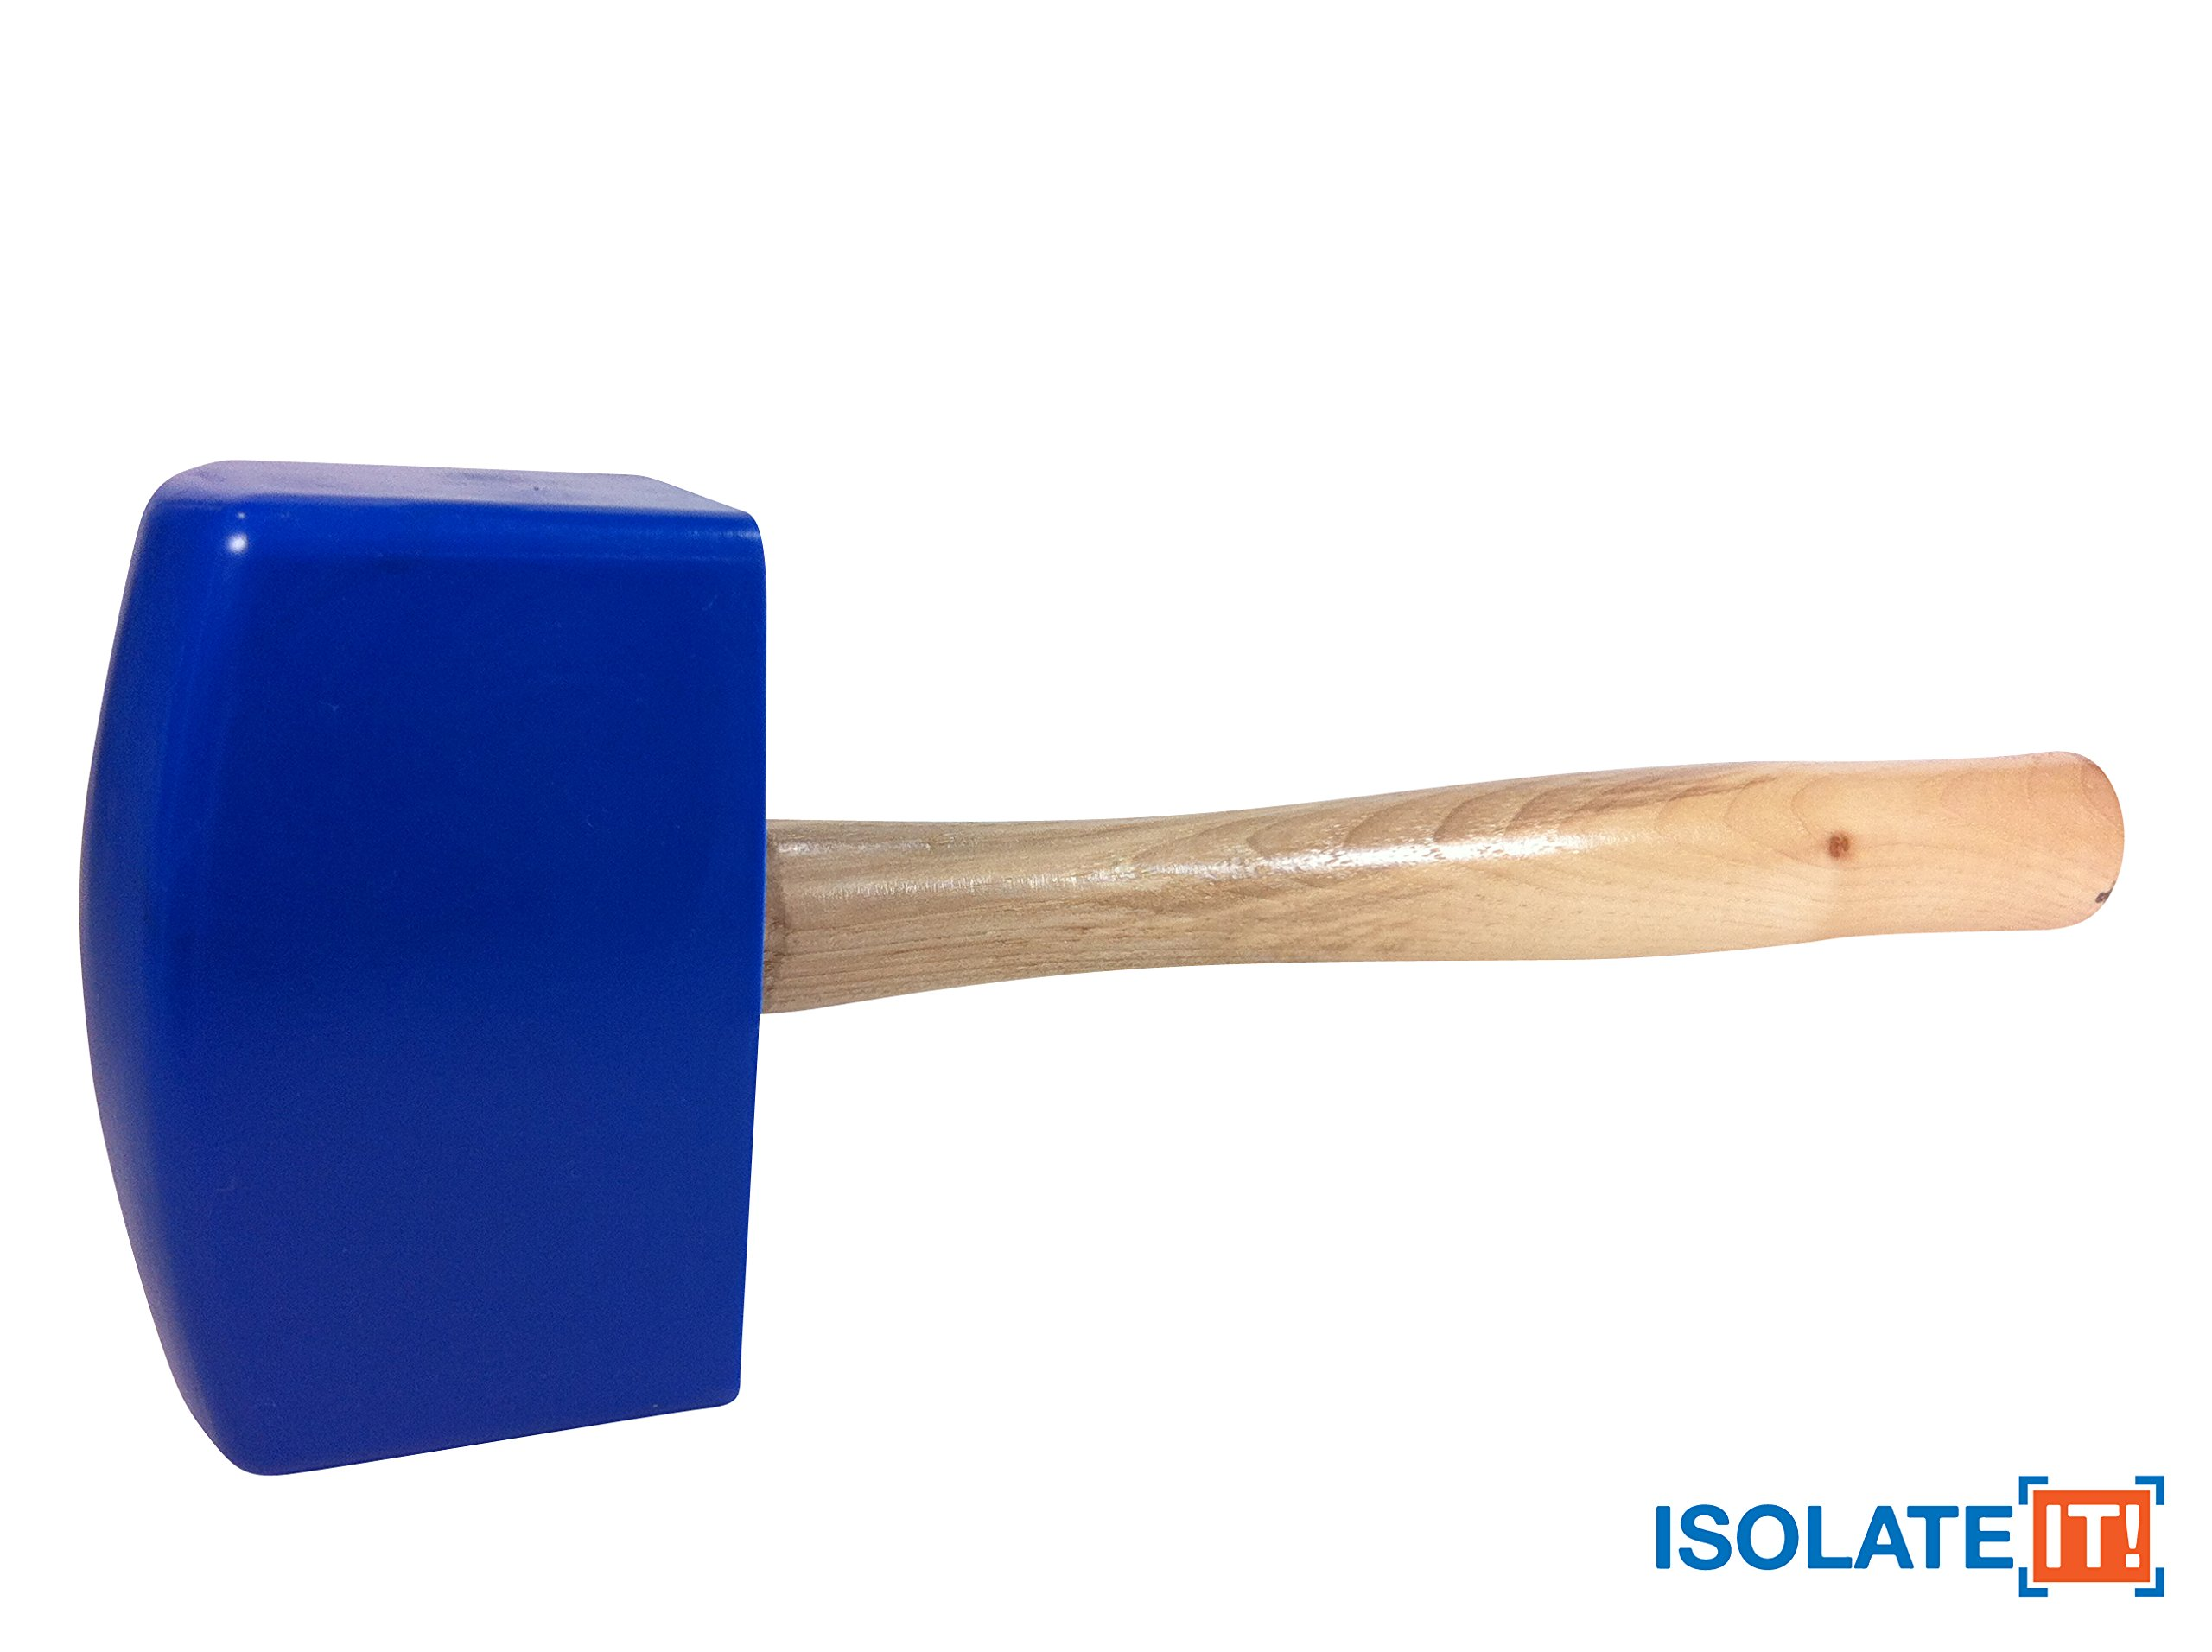 Isolate It!: Sorbothane Soft-blow Mallet for Automotive, Cabinetry, Carpentry and Glass Work - Large 20oz by Isolate It! (Image #2)